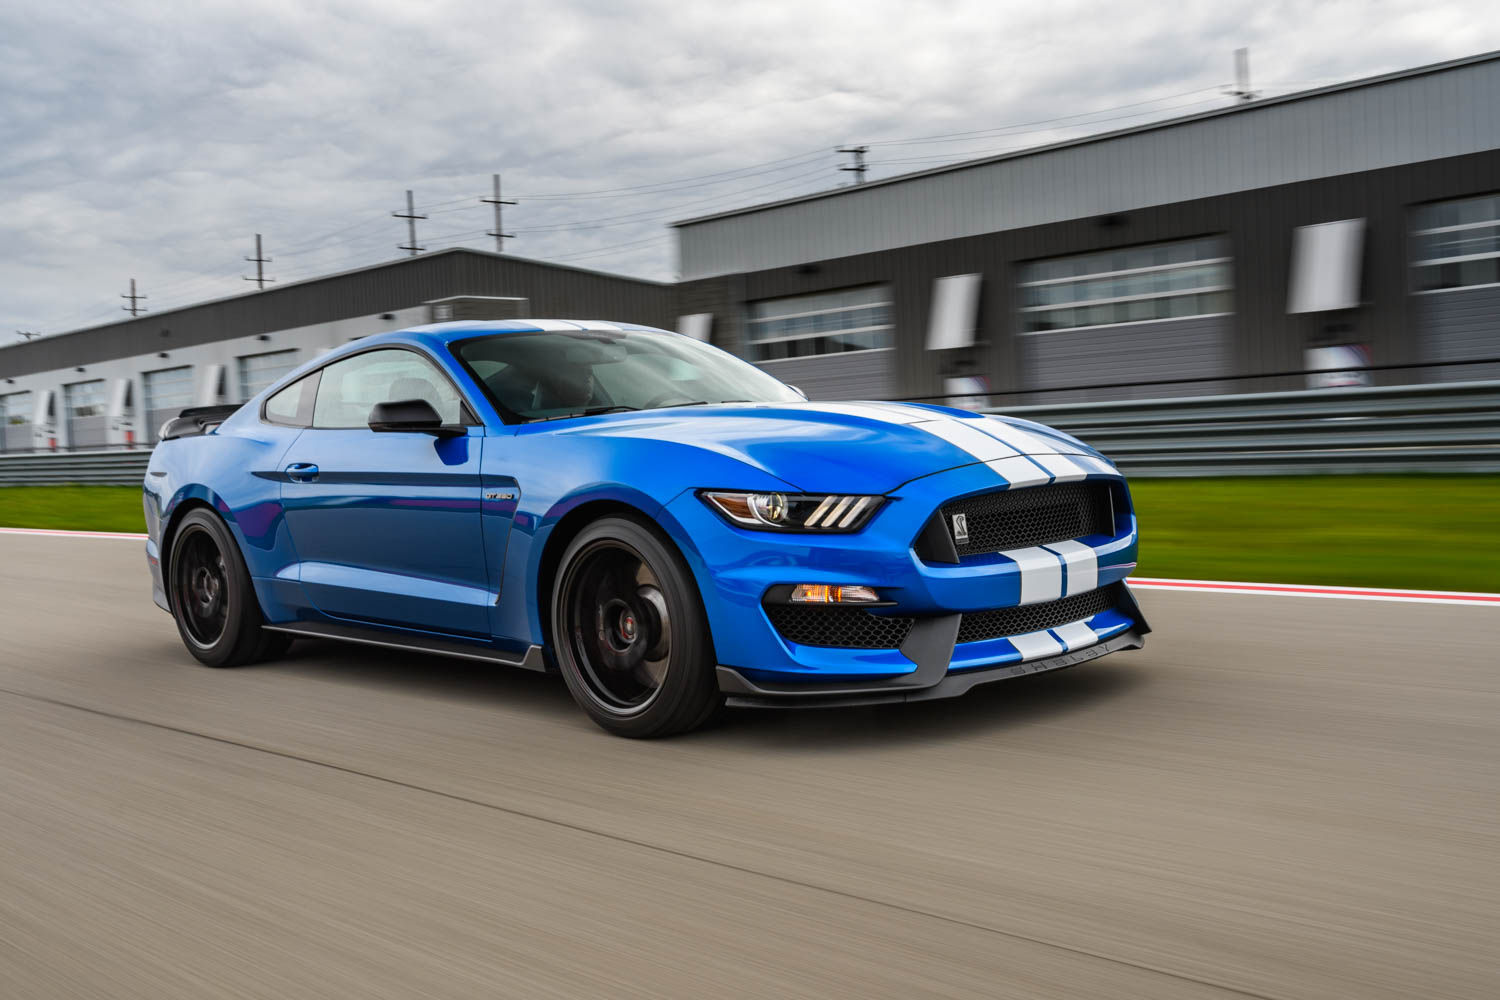 Ford discontinuing GT5 and Bullitt for 5, adding Mach 5